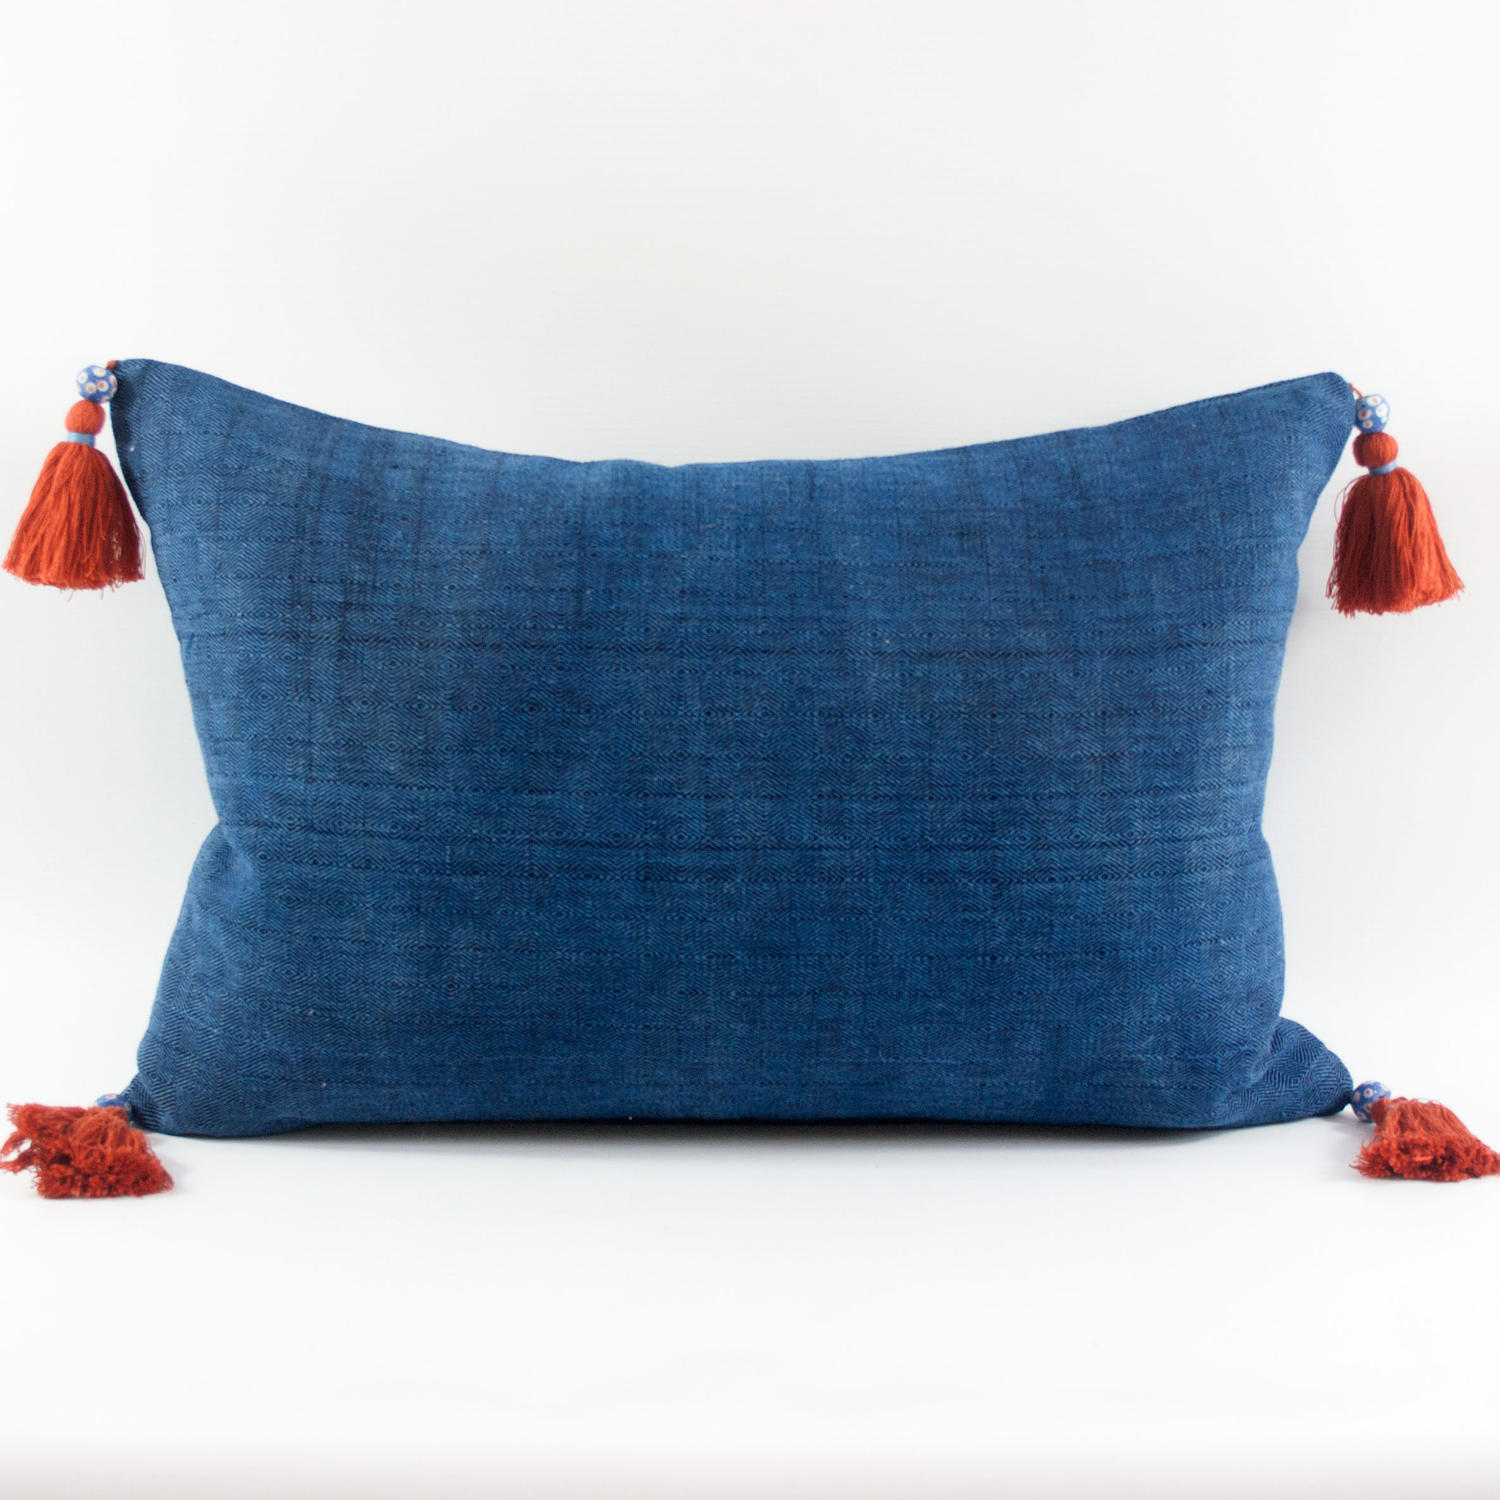 Shui Cushions with Tassels